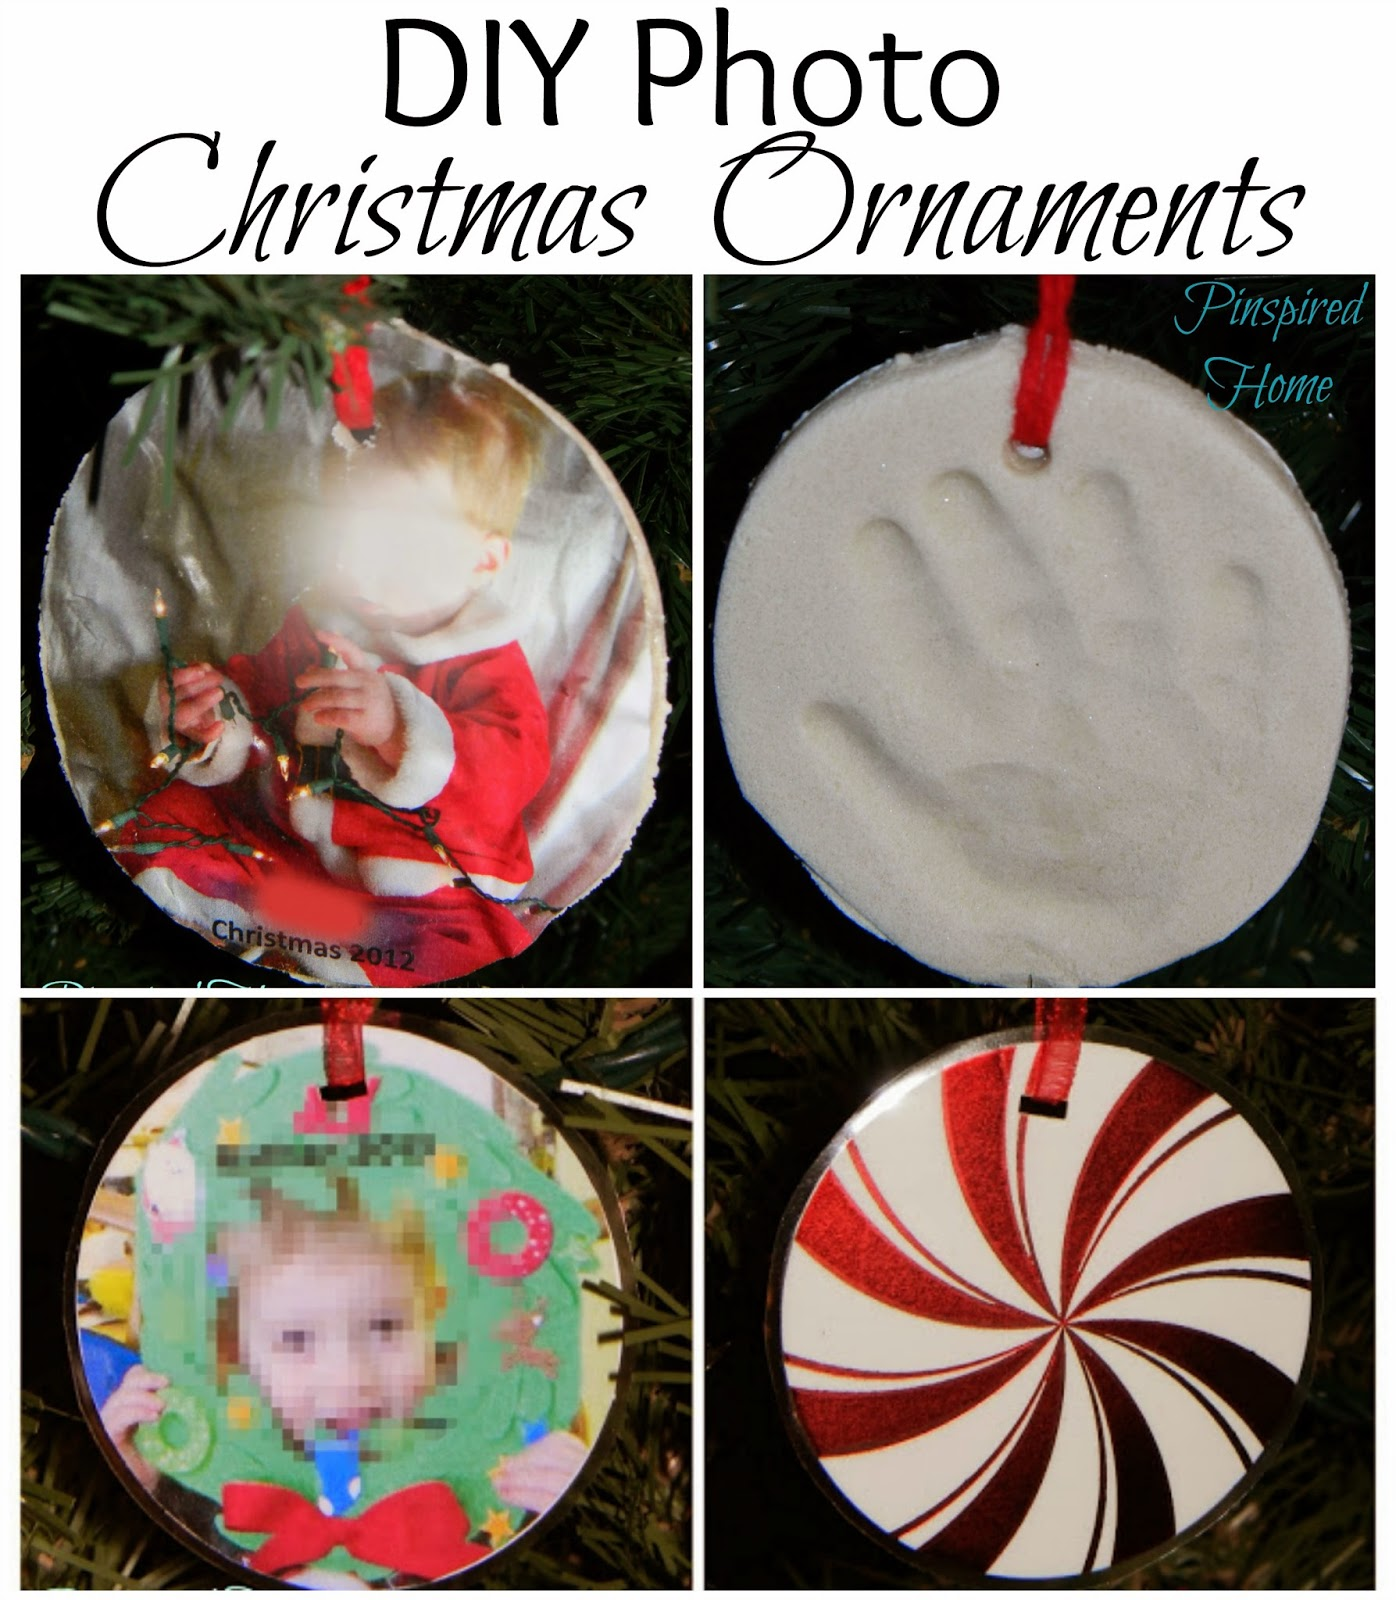 http://pinspiredhome.blogspot.com/2014/01/photo-ornaments-from-gift-tags.html